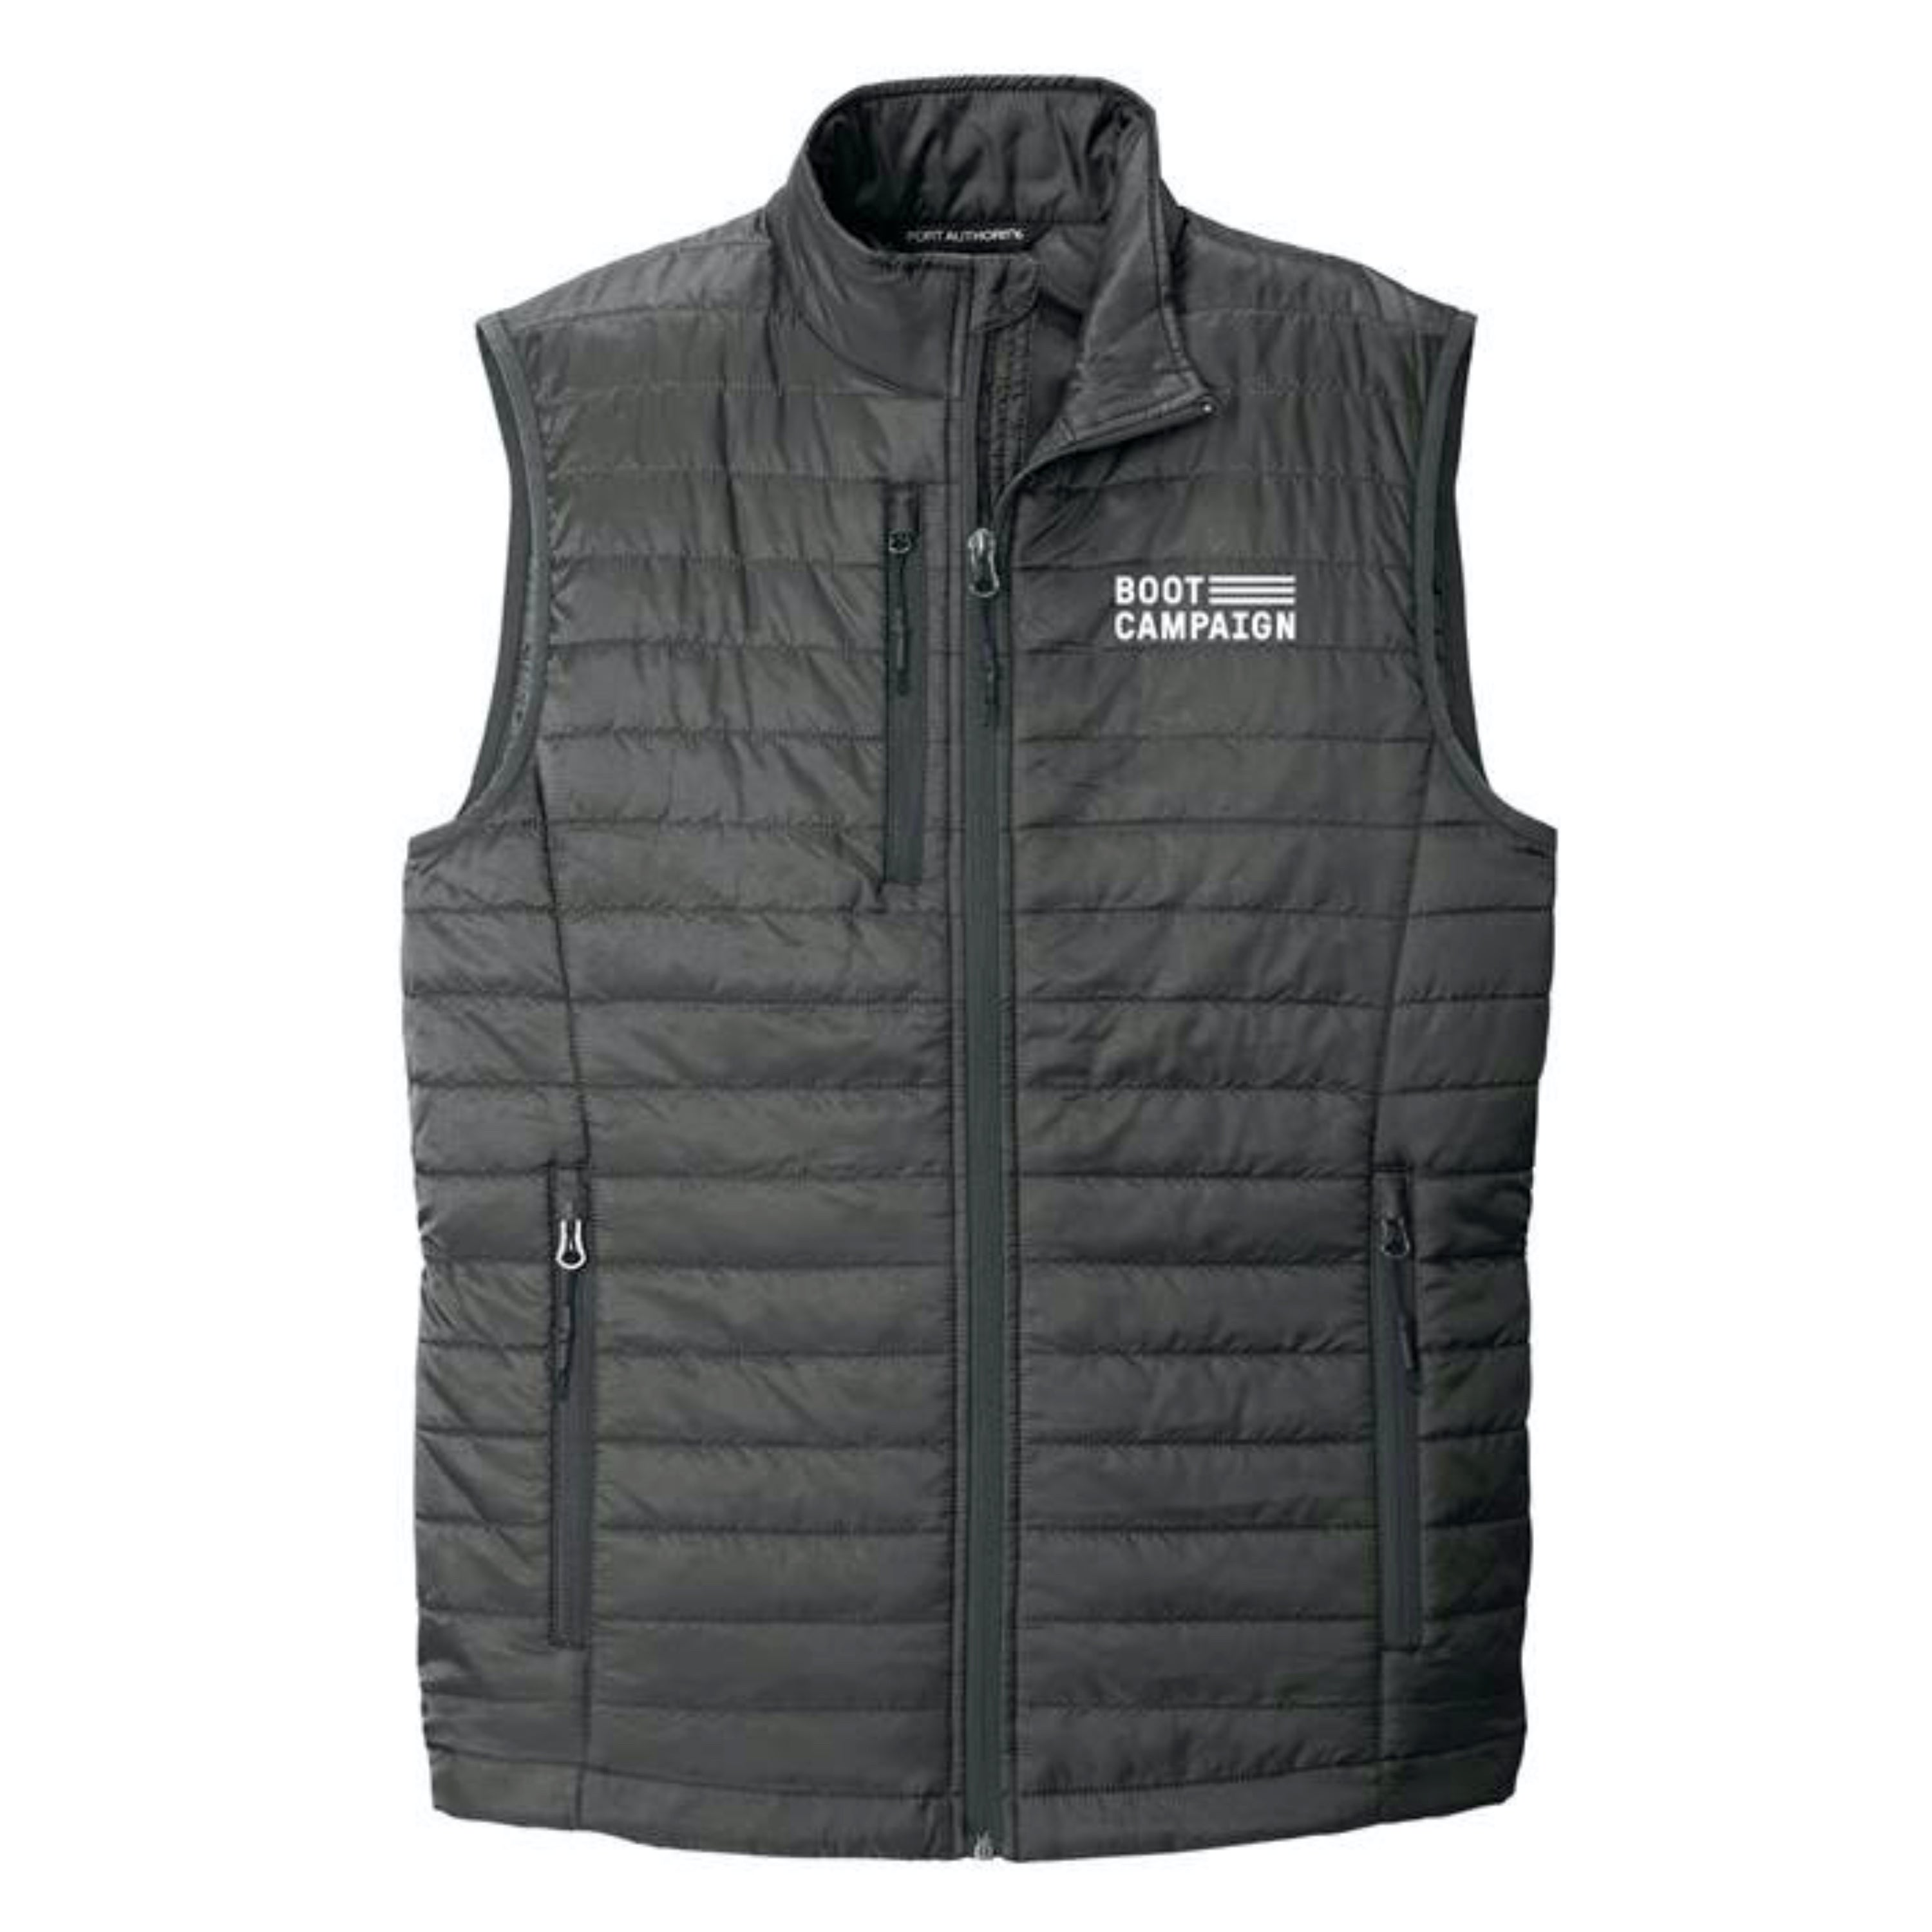 Boot Campaign Puffer Vest